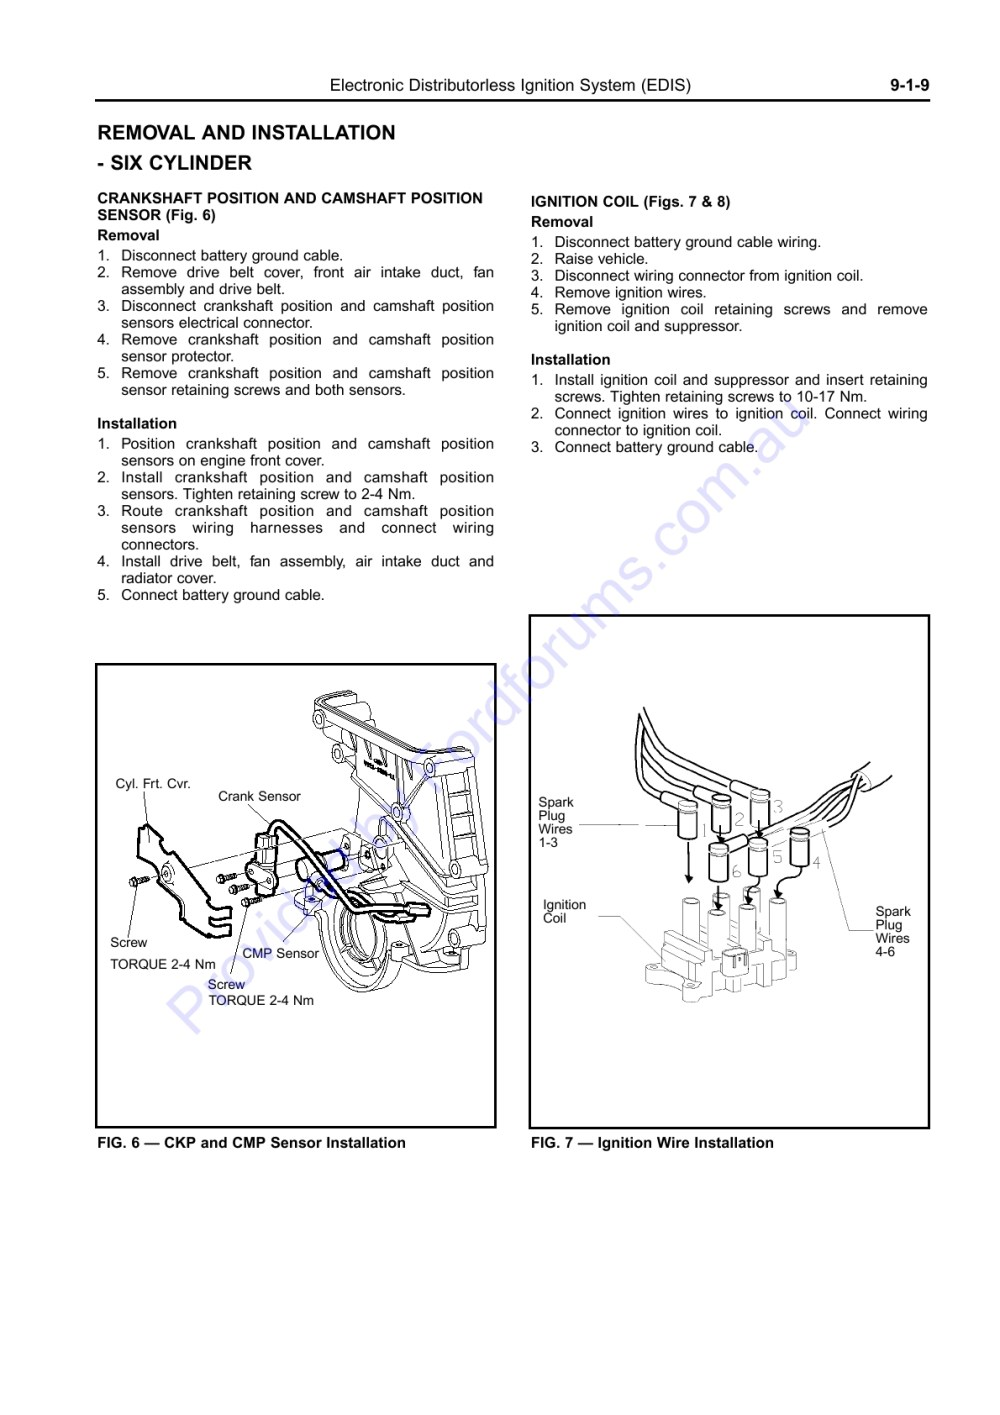 medium resolution of wiring manual diagrams 199r10555 electronic distributorless ignition system edis